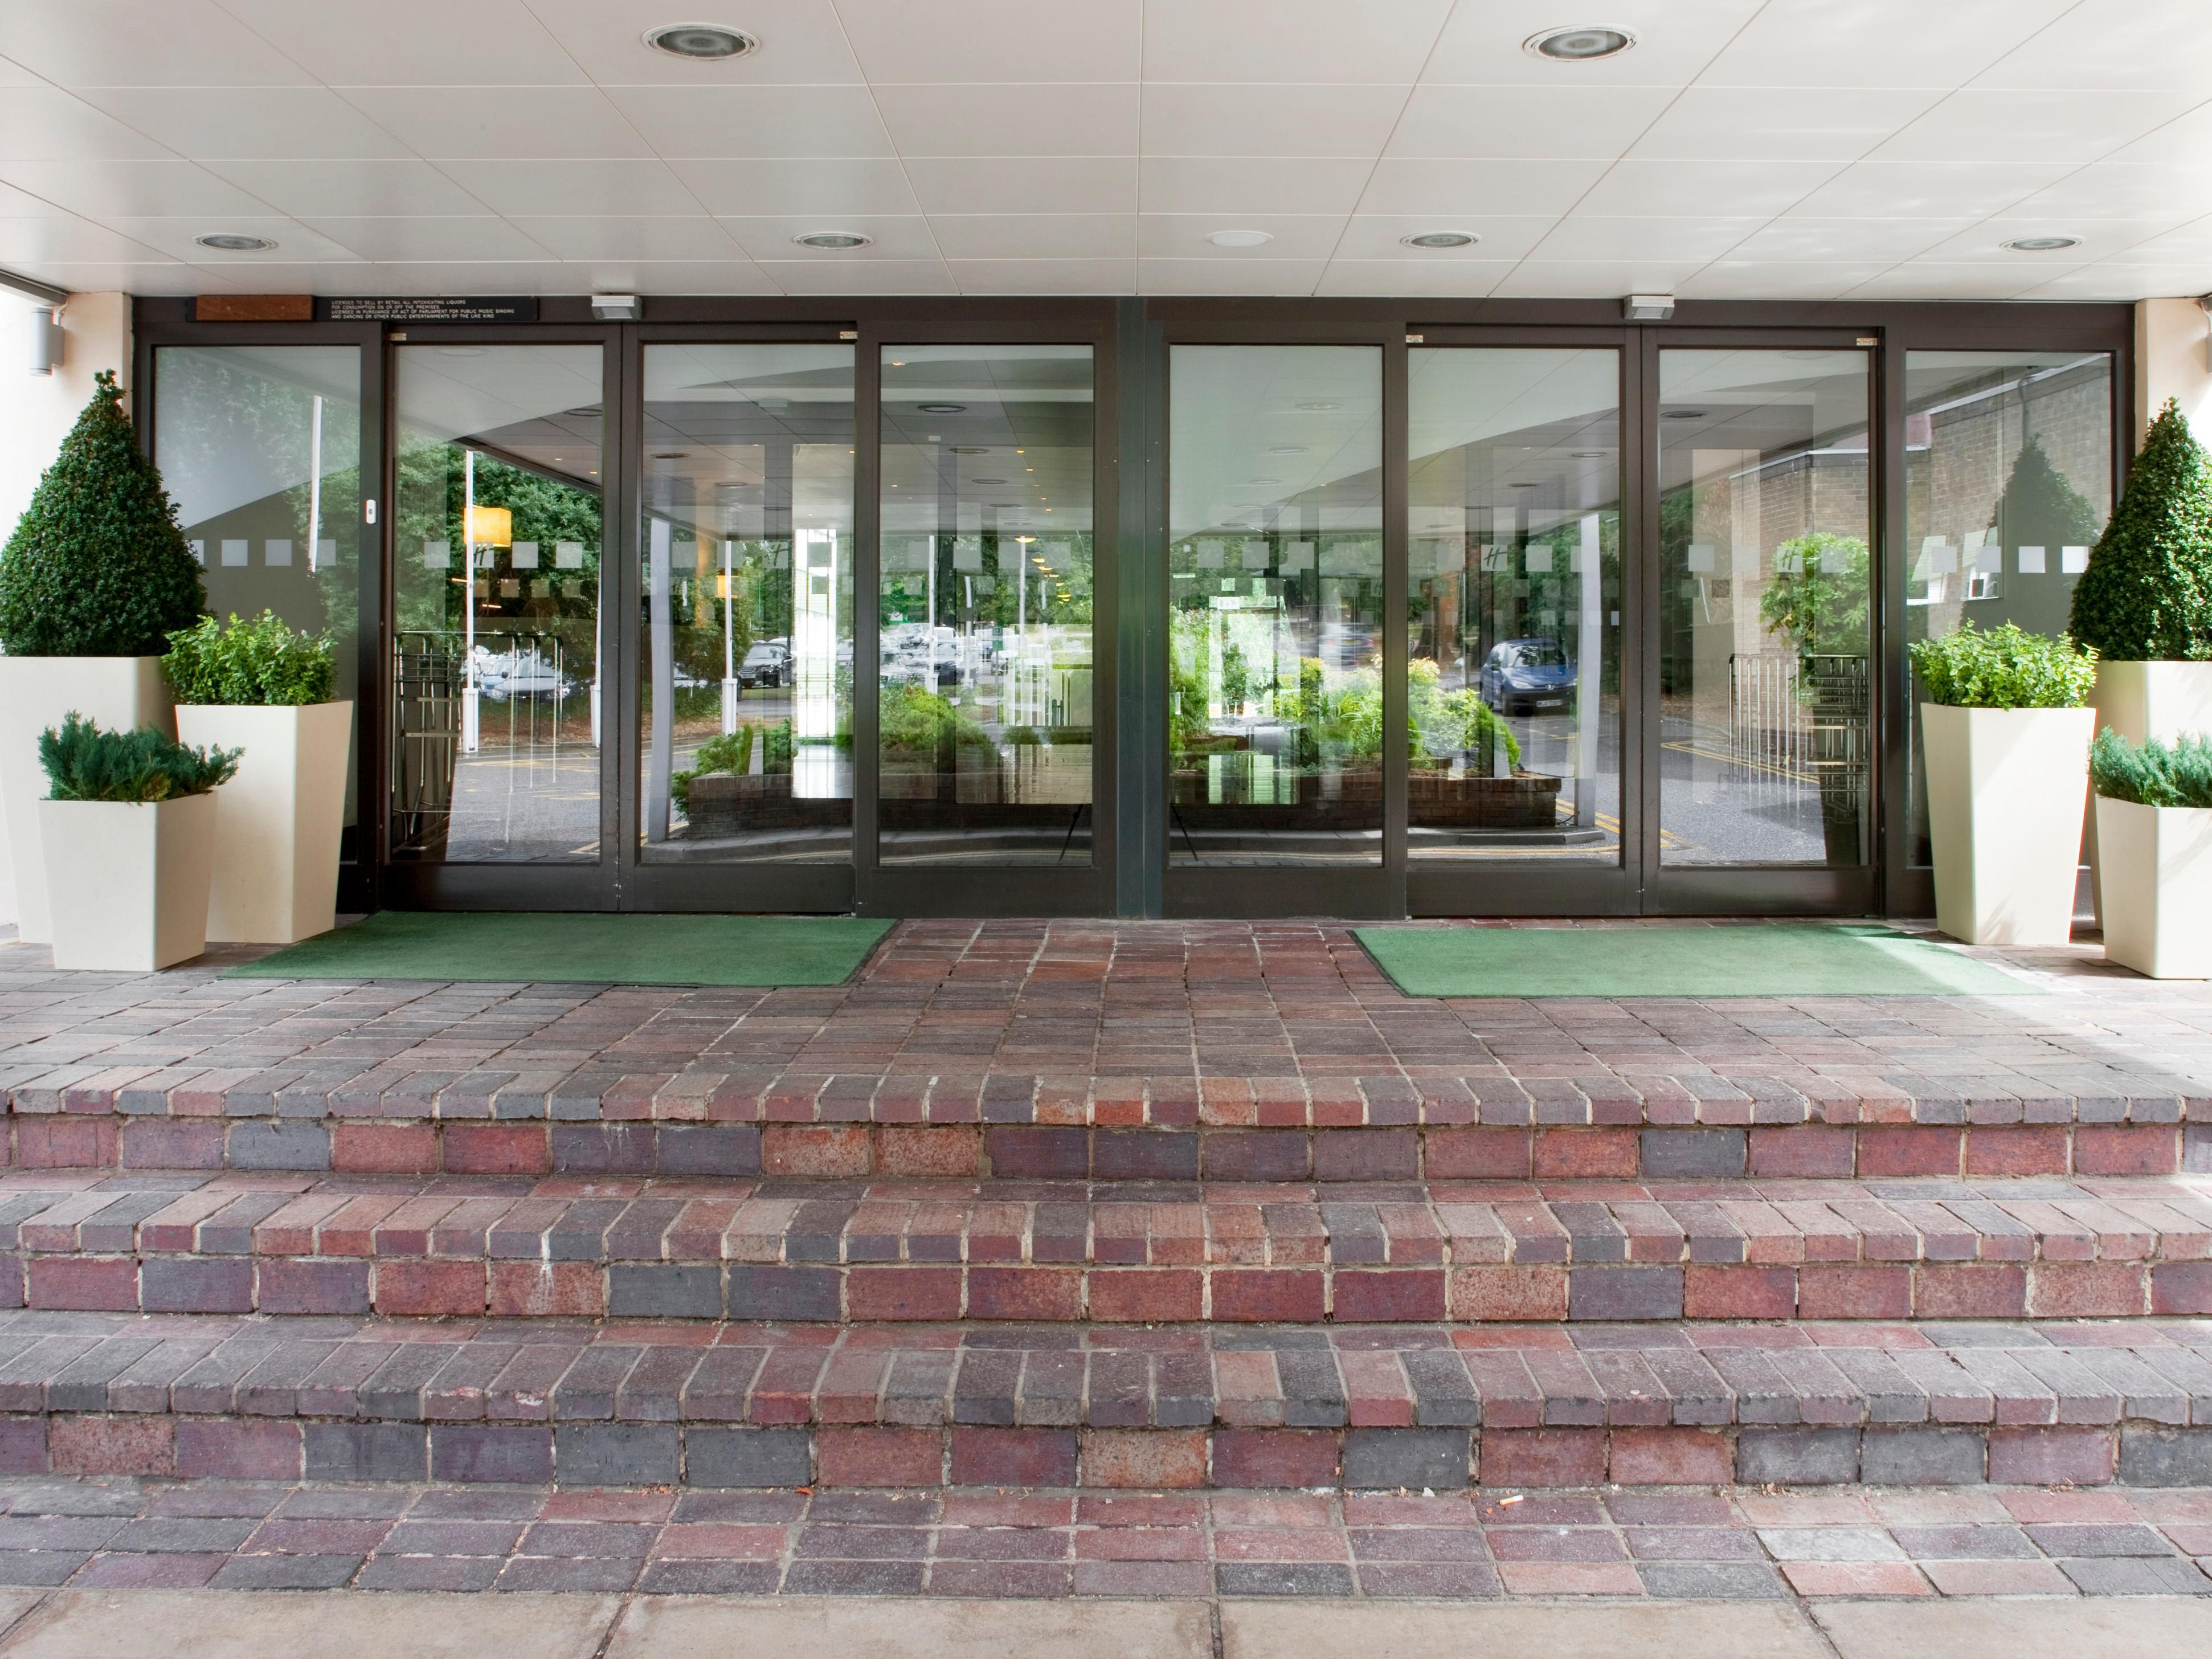 Our entrance at the Holiday Inn Bristol Filton